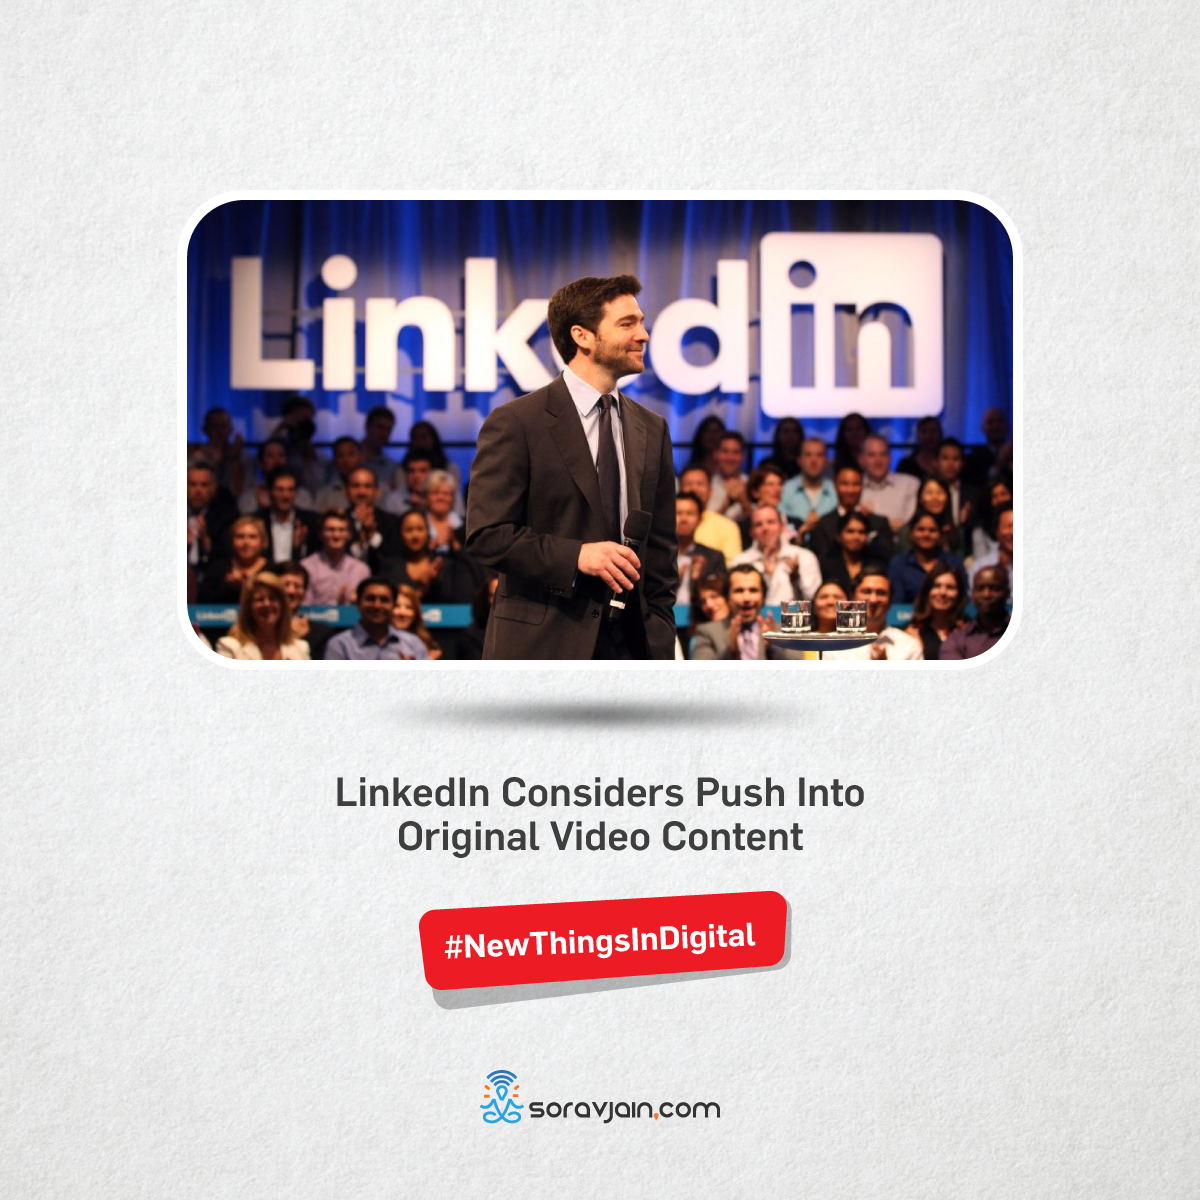 LinkedIn Considers Push Into Original Video Content